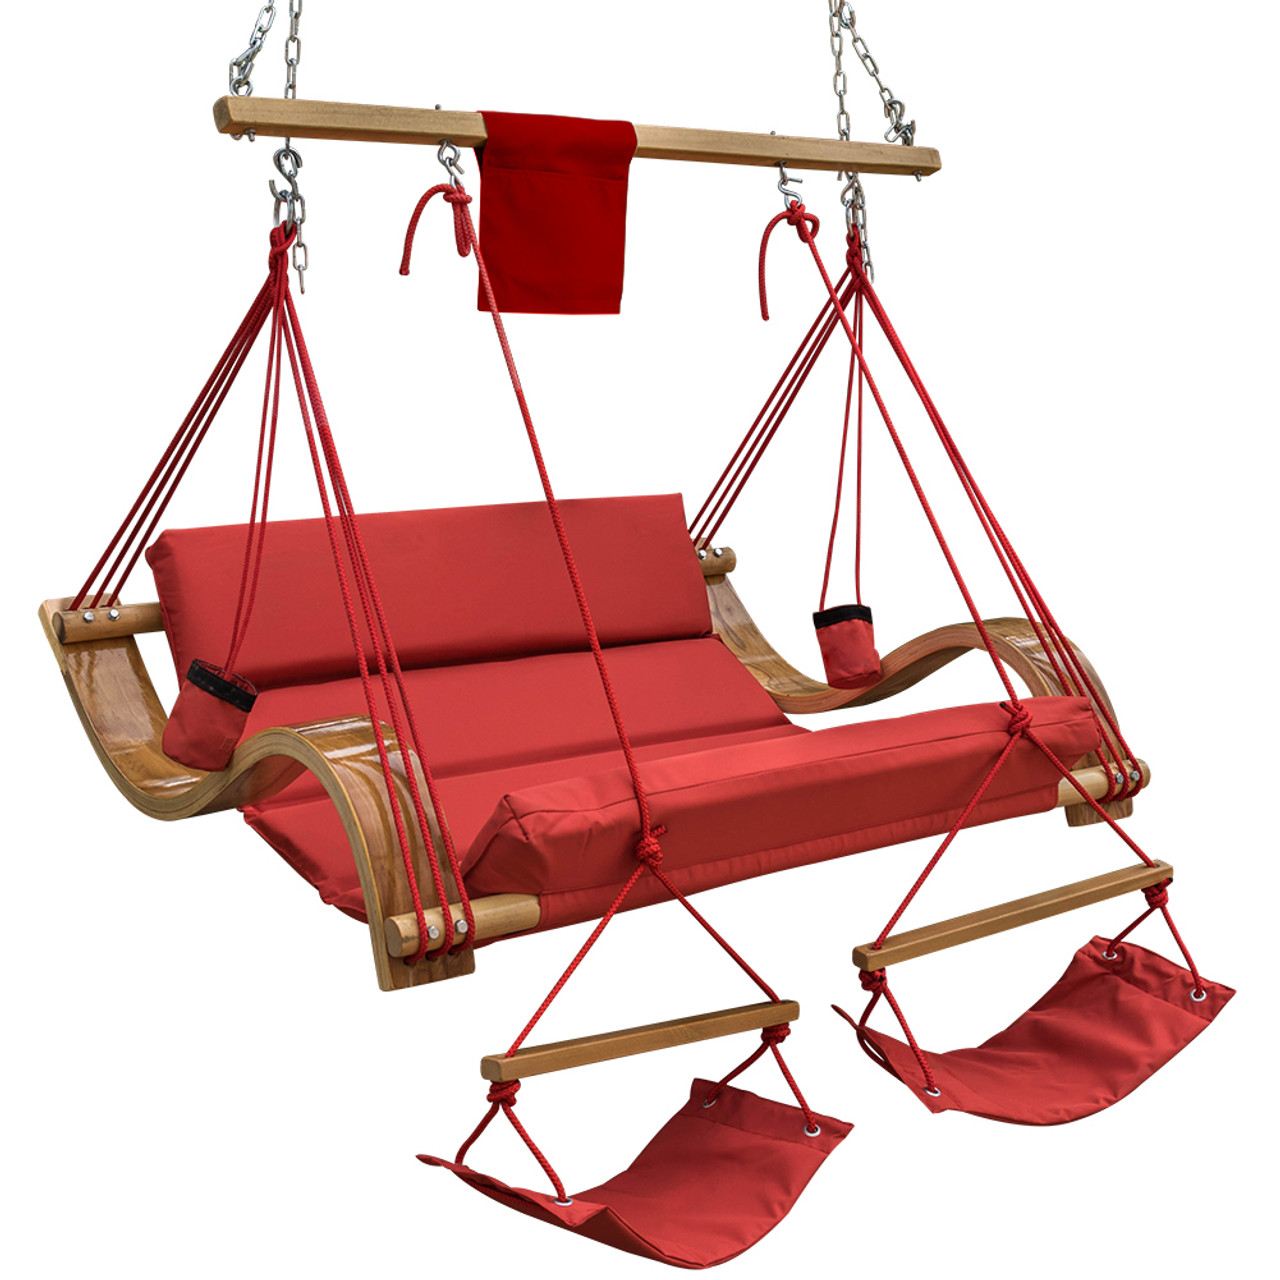 Deluxe Oversized Double Hanging Rope Chair Cotton Padded Swing Chair